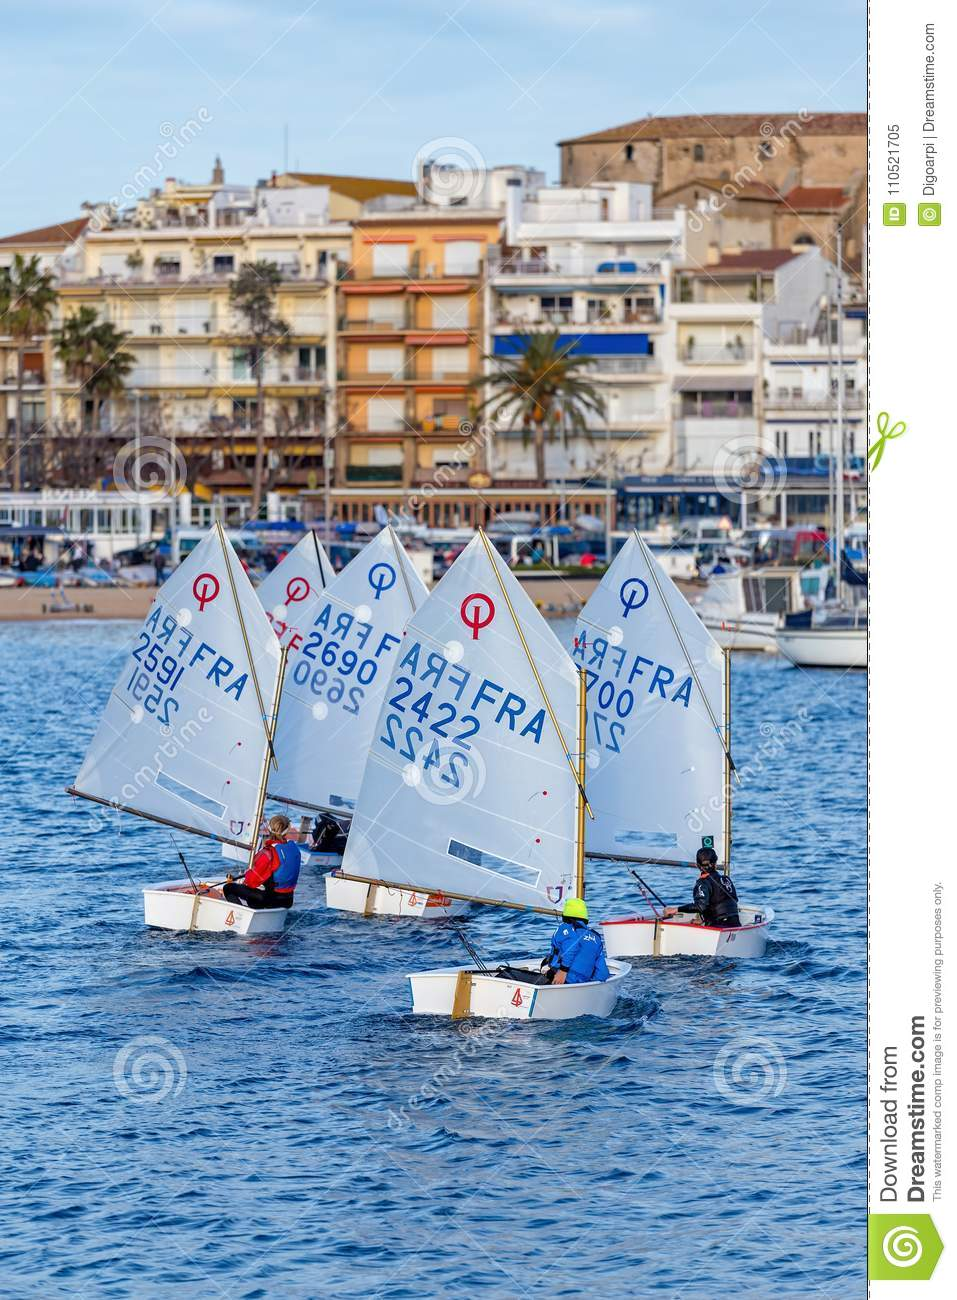 29. INTERNATIONALE PALAMOS-OPTIMIST-TROPHÄE 2018, 13. NATIONS-SCHALE, am 15. Februar 2018, Stadt Palamos, Spanien